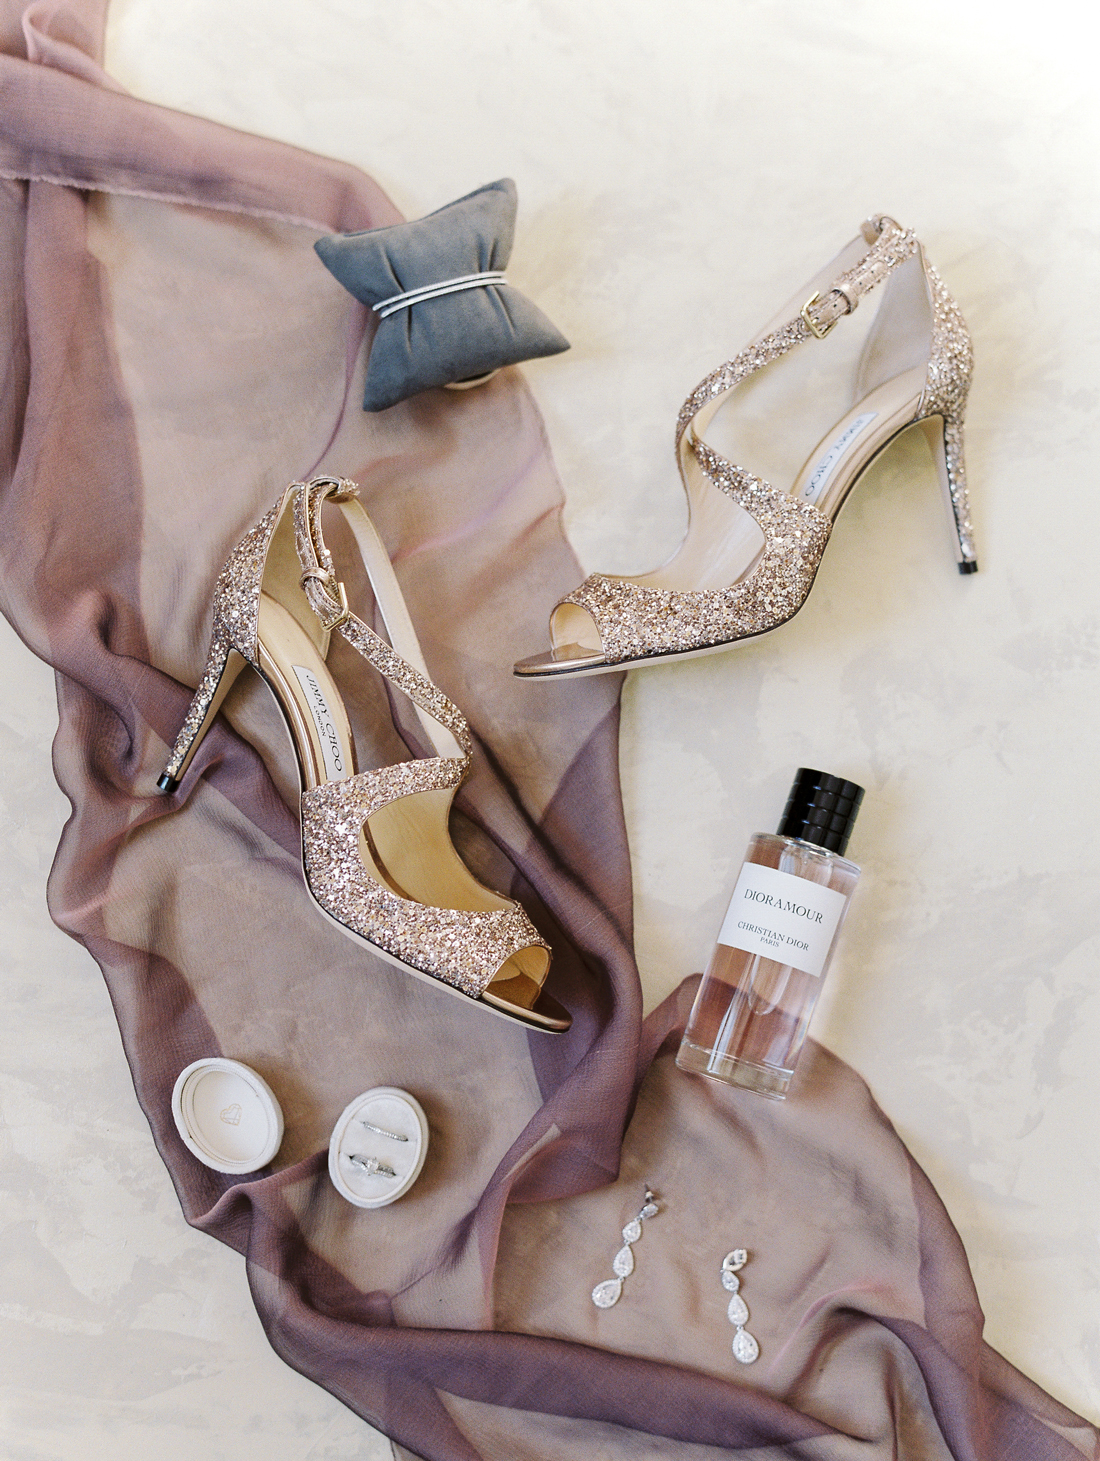 champagne colored heels, diamond earrings, perfume, and other bridal accessories